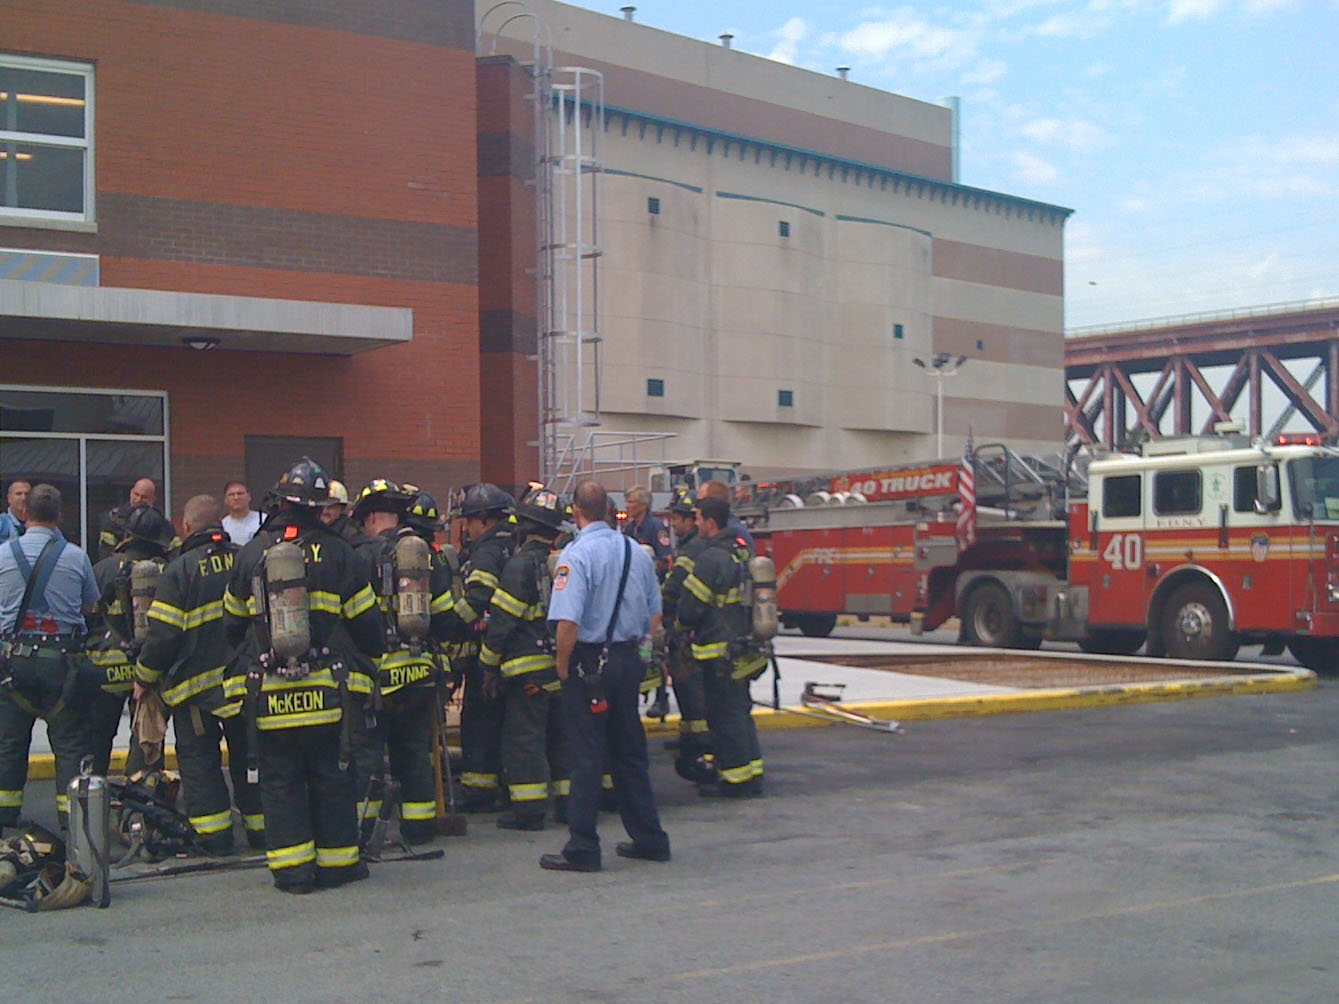 Firefighters in front of the simulator